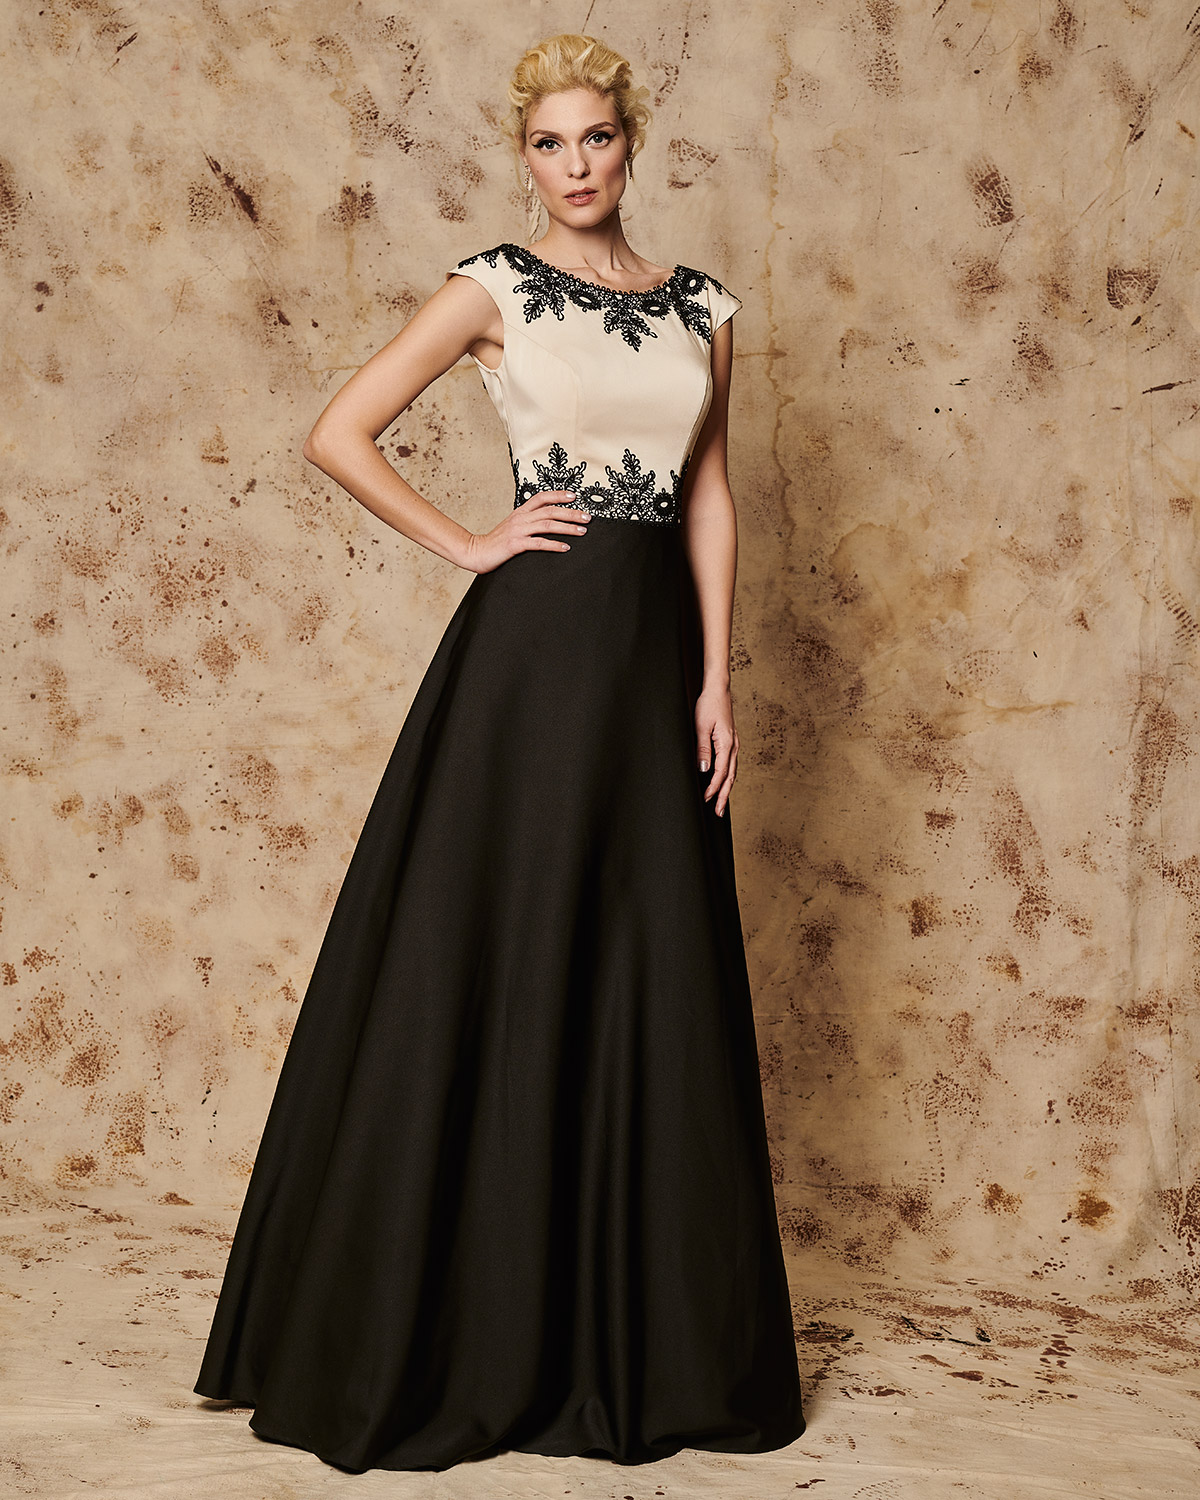 Classic Dresses / Long evening dress with lace details on the bust